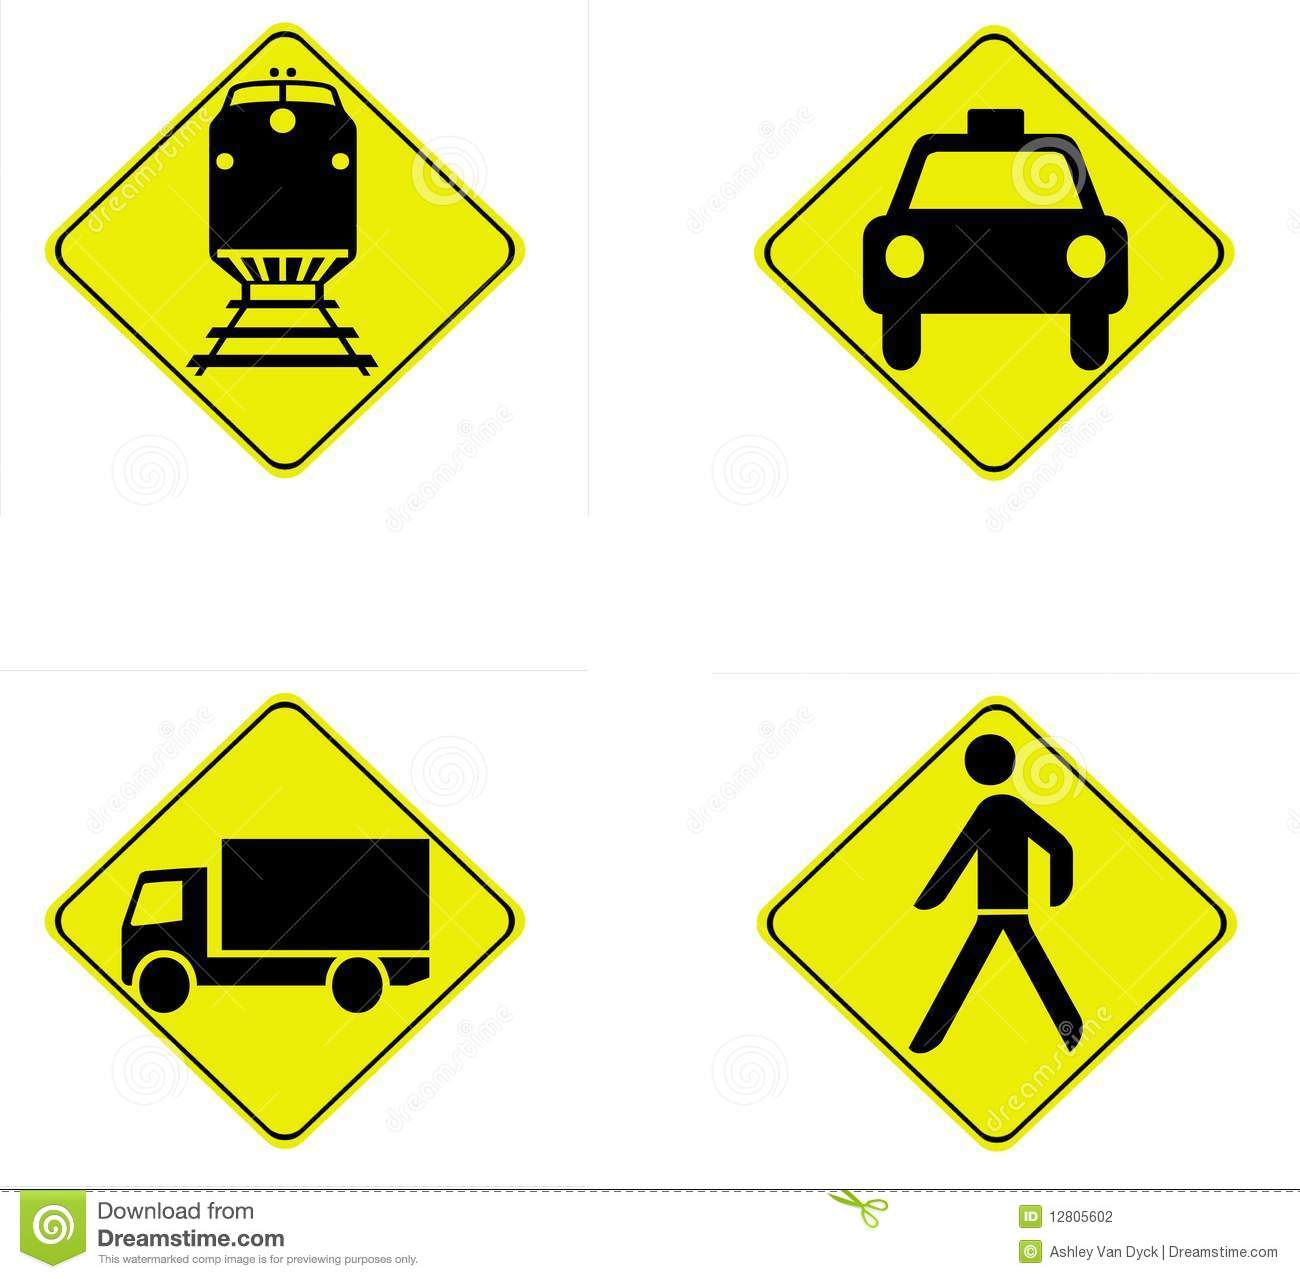 A set of four yellow and black road safety signs